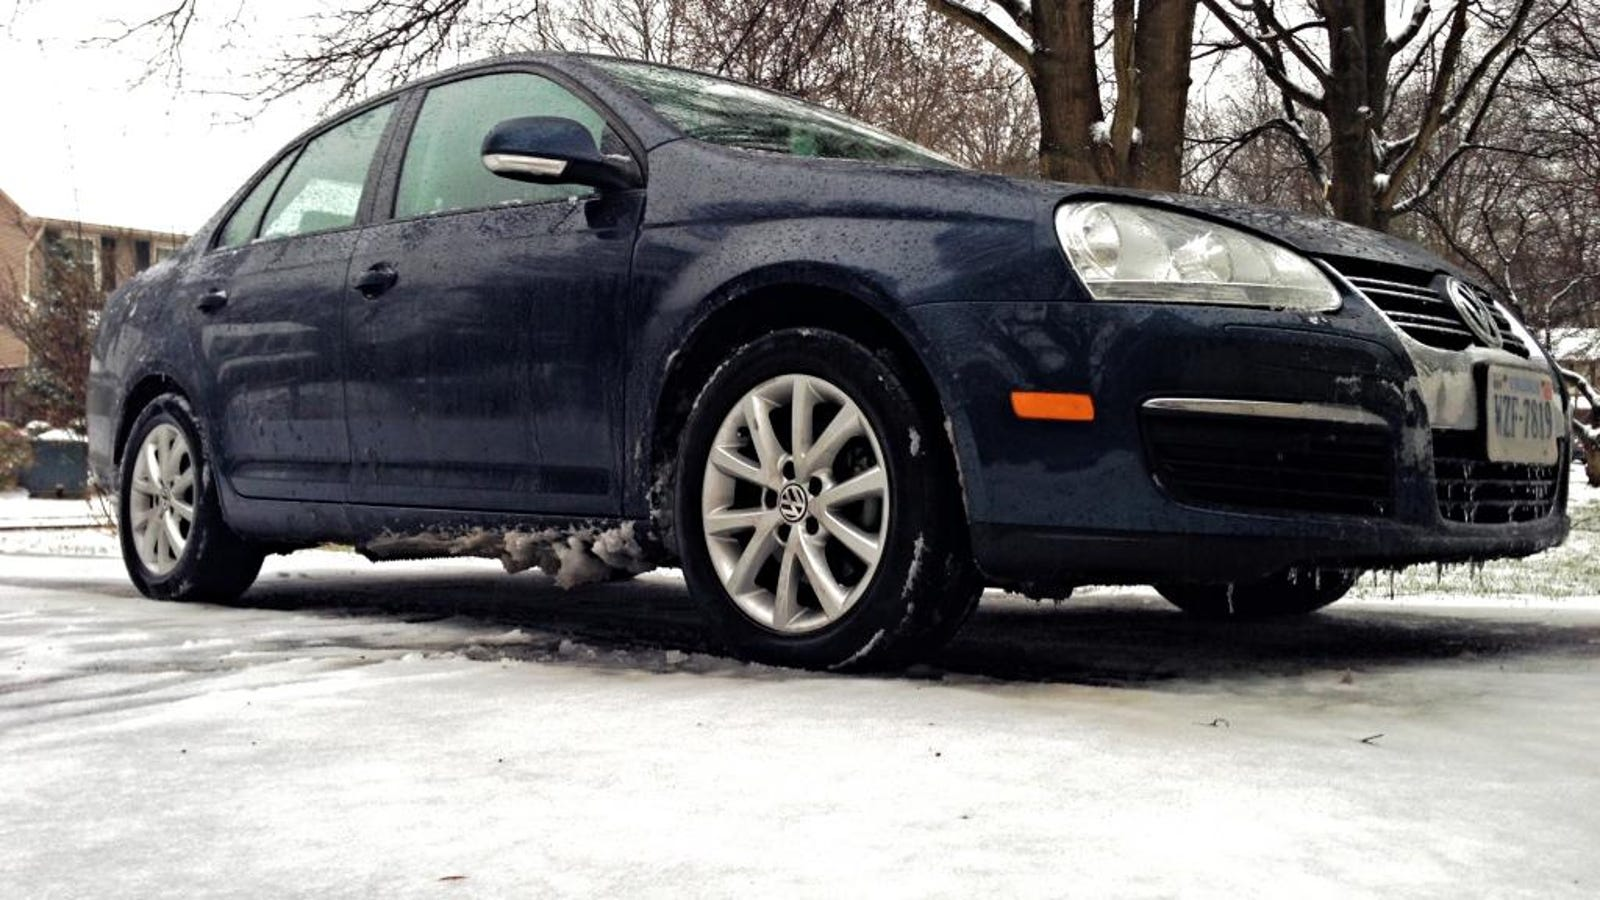 Why I Love the Mk5 Volkswagen Jetta, and You Should Too